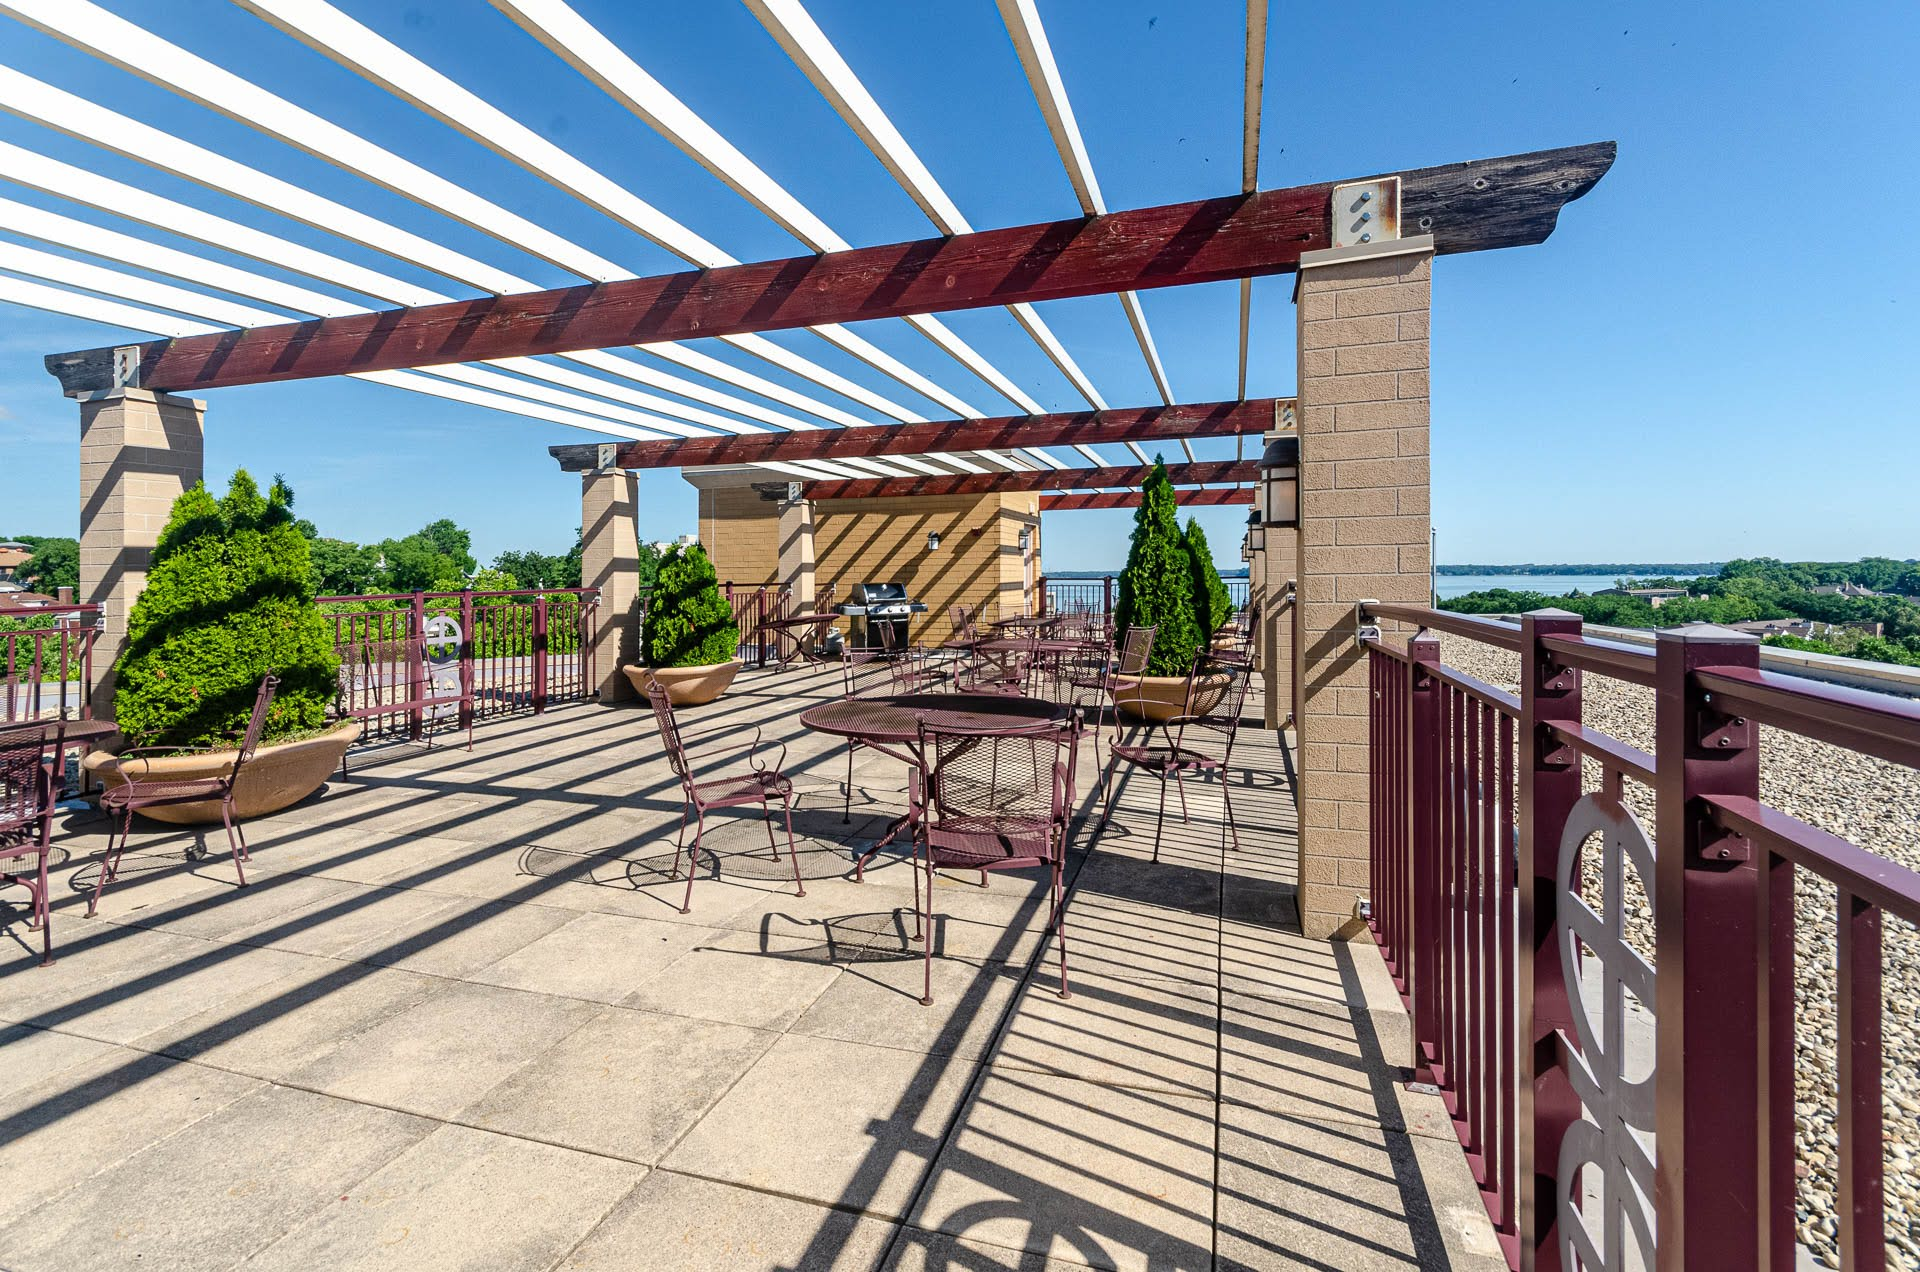 Penthouse Patio with Grill and Tables